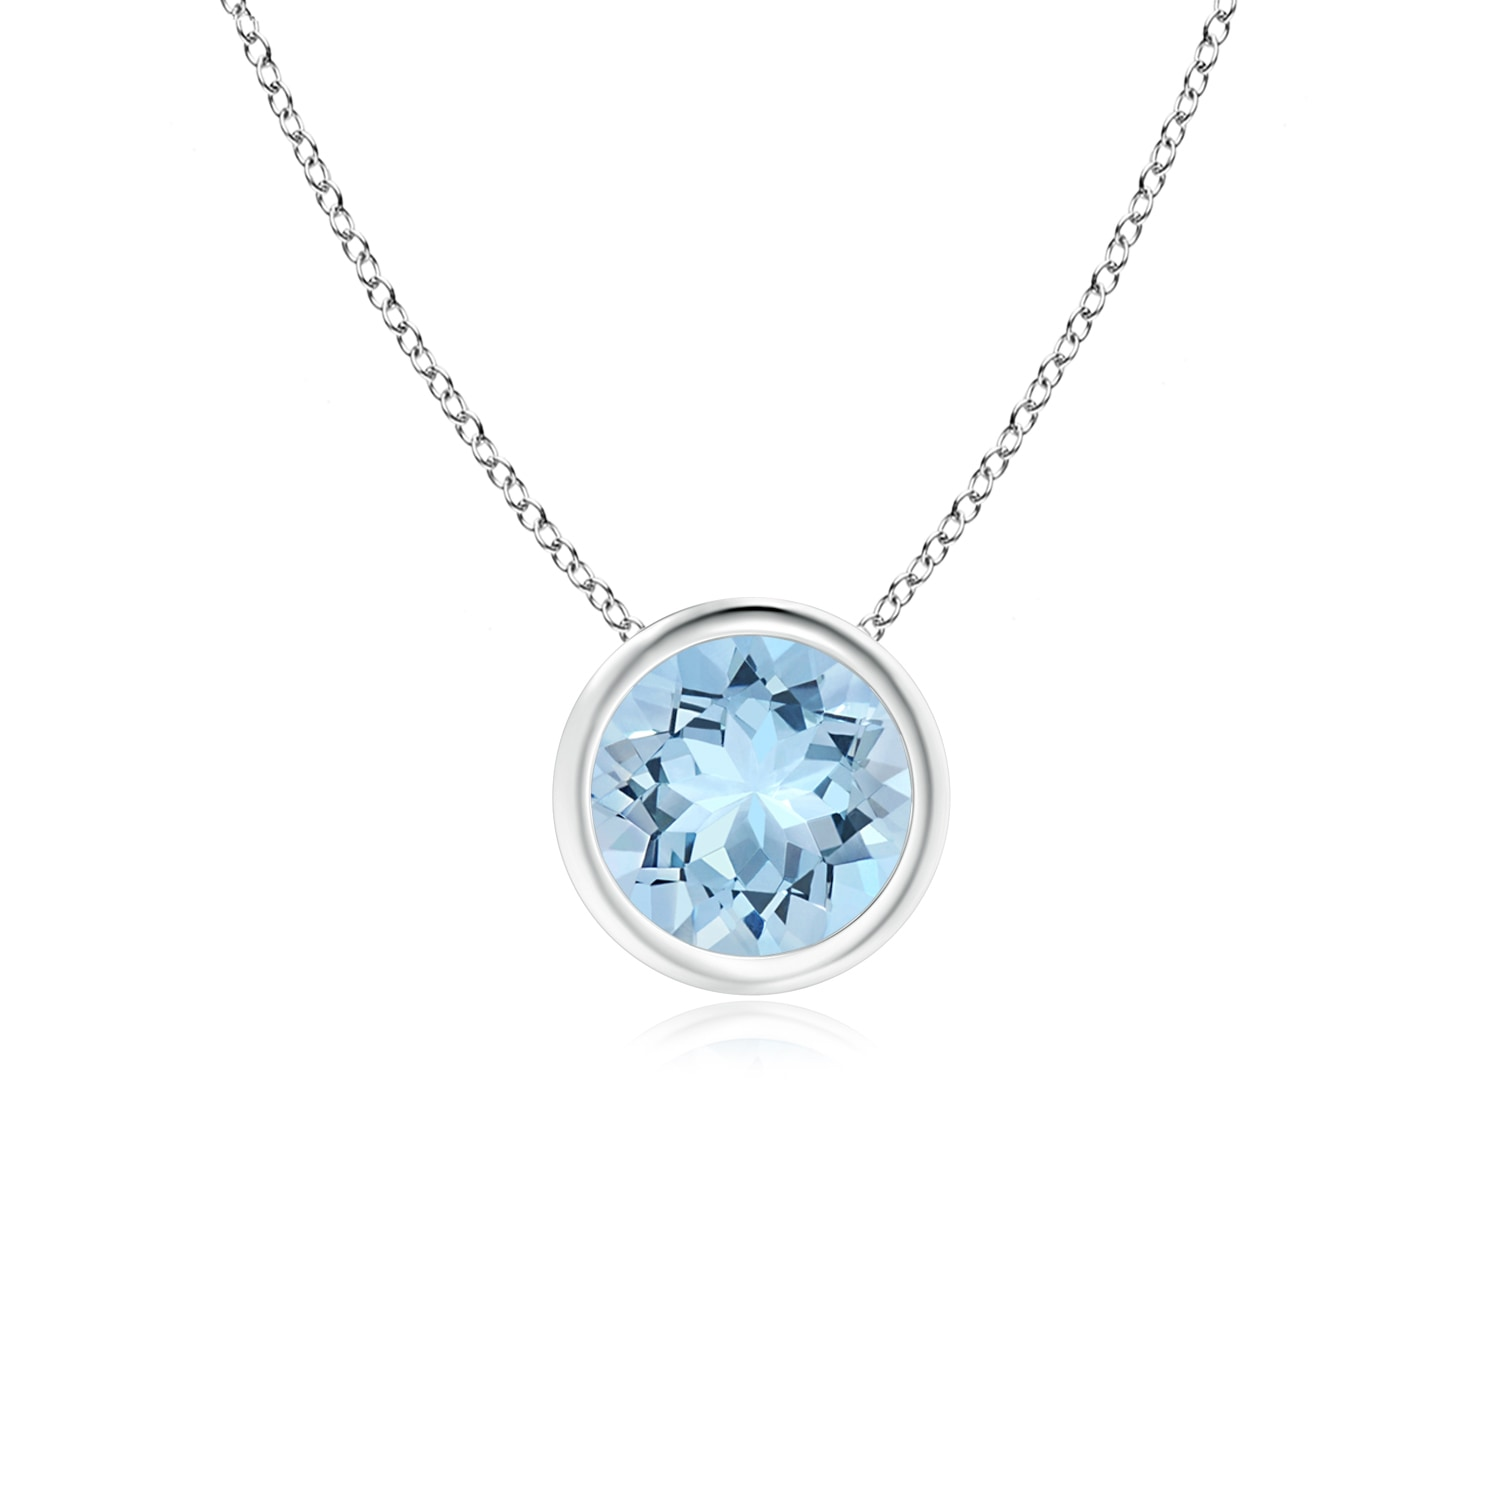 mv en silver accents diamond marine kaystore pendant sterling zm aquamarine necklace kay aqua